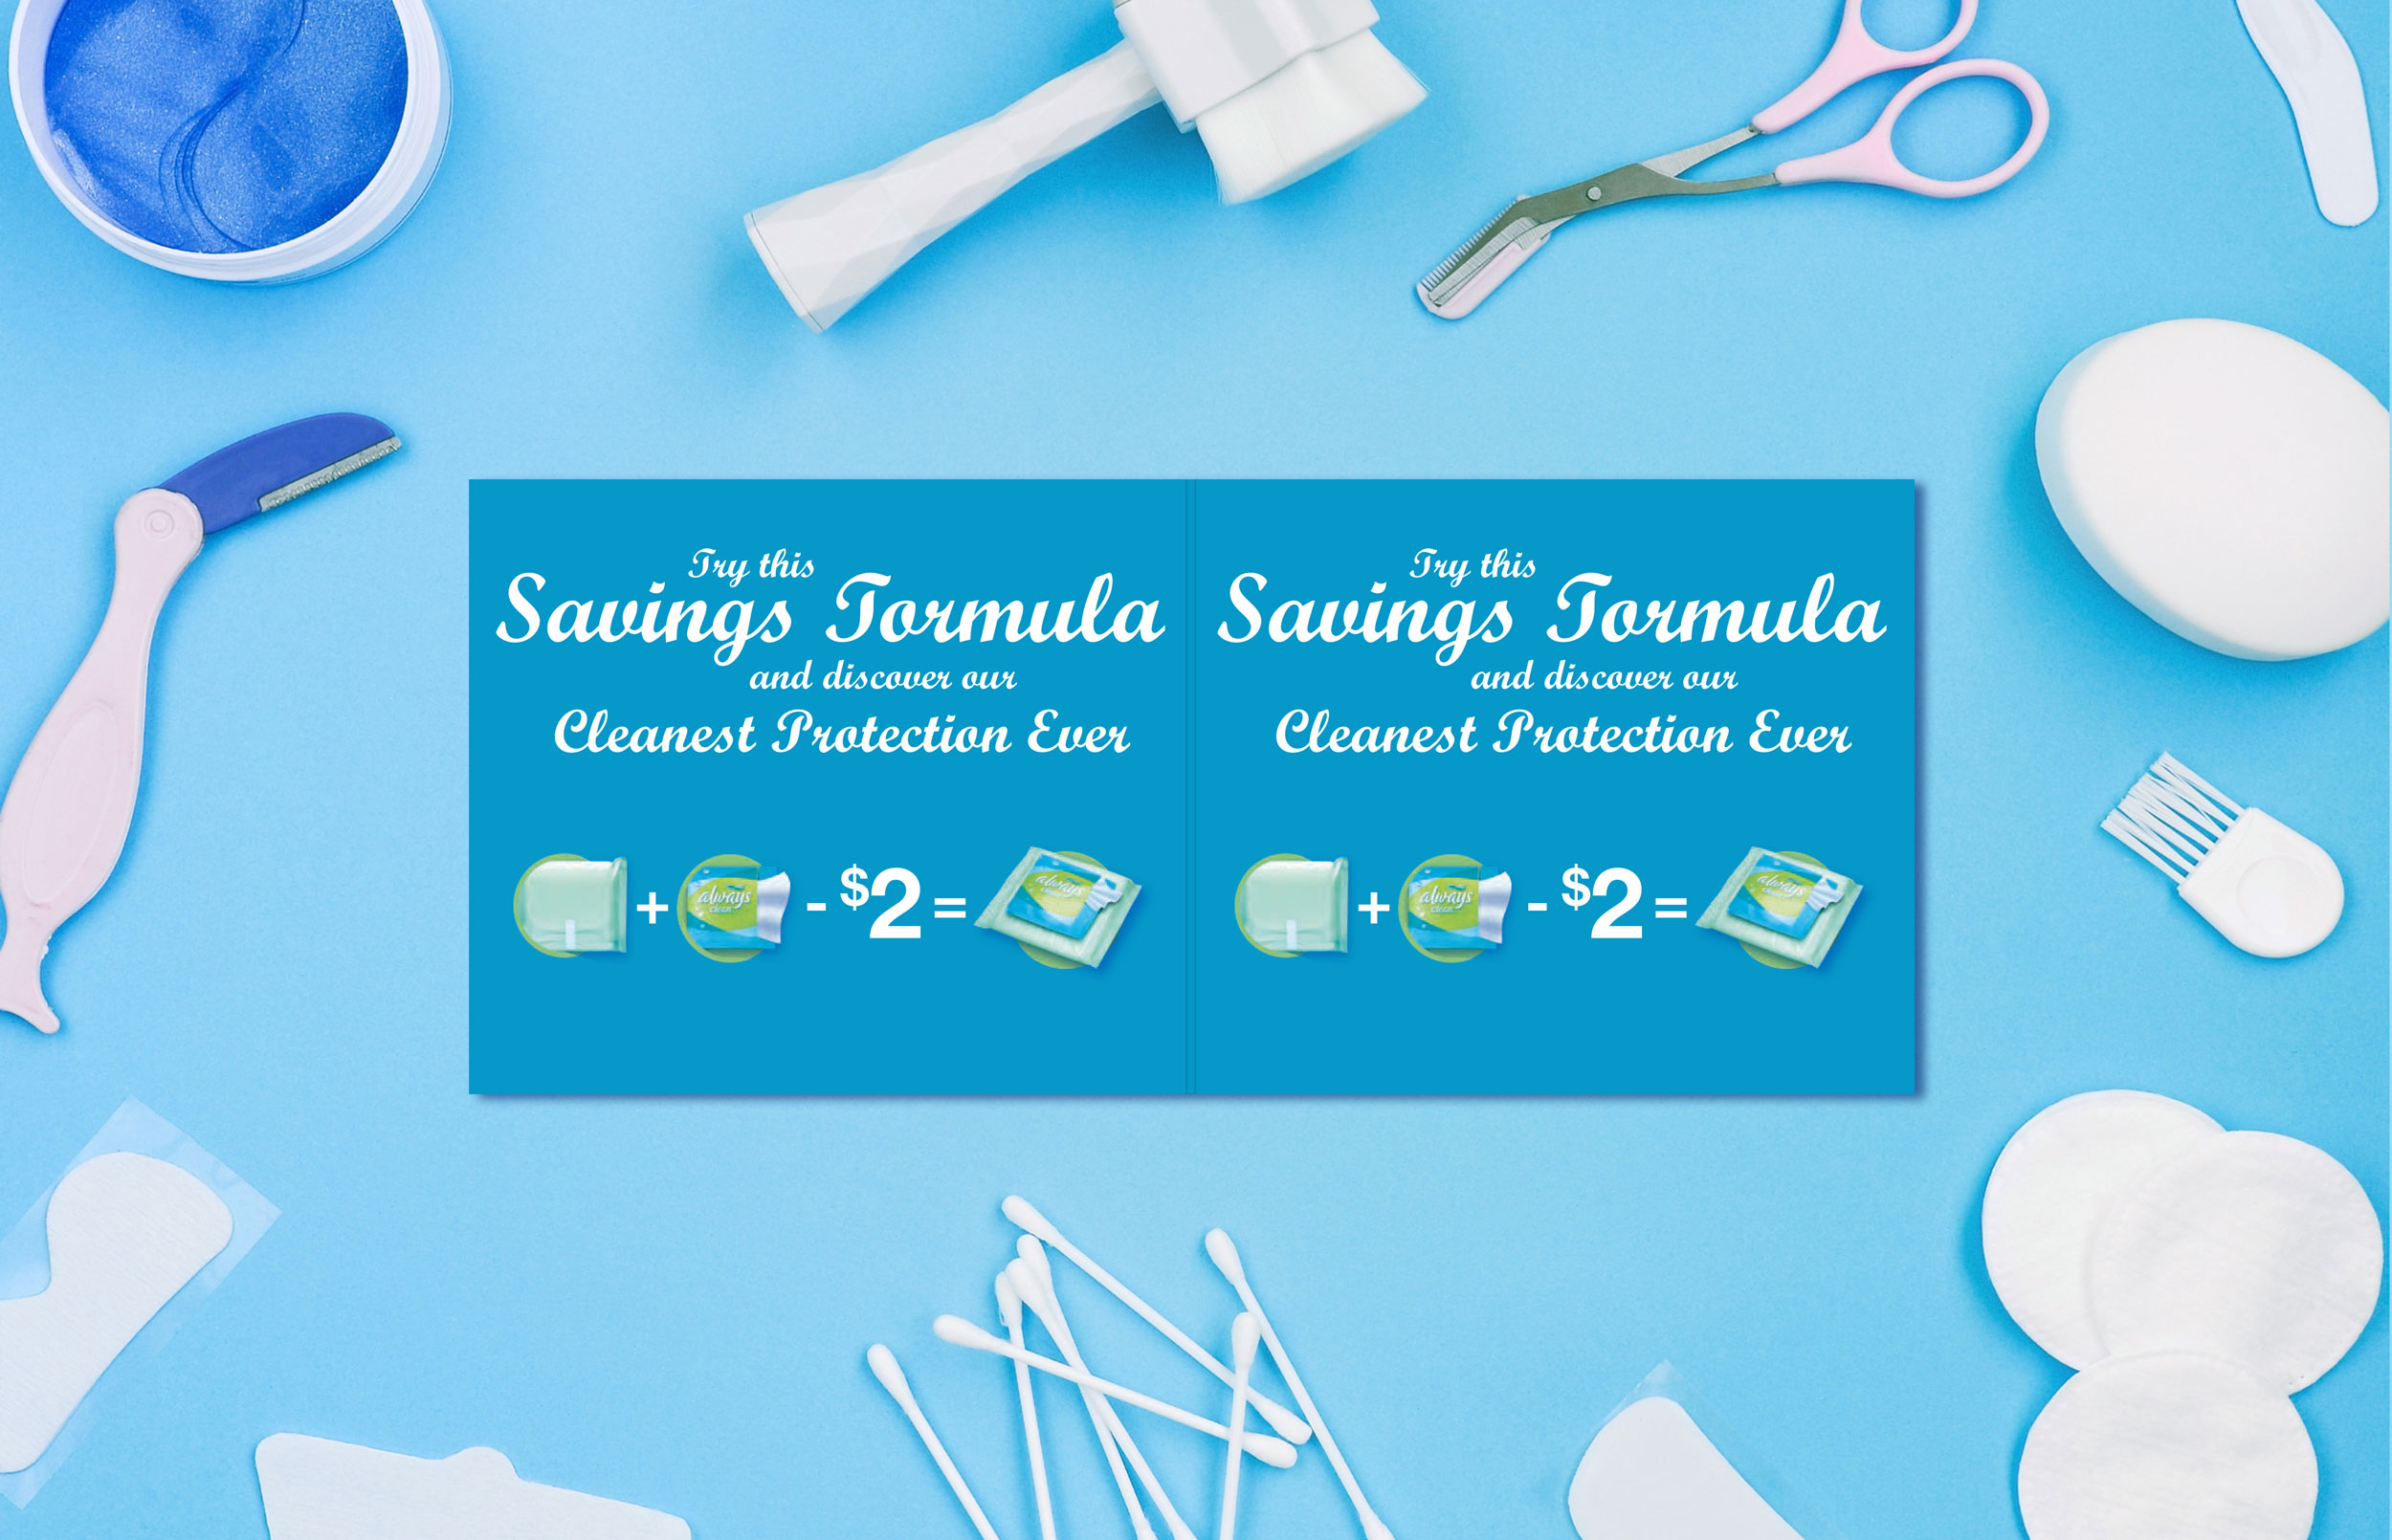 Brand of Menstrual Hygiene Products